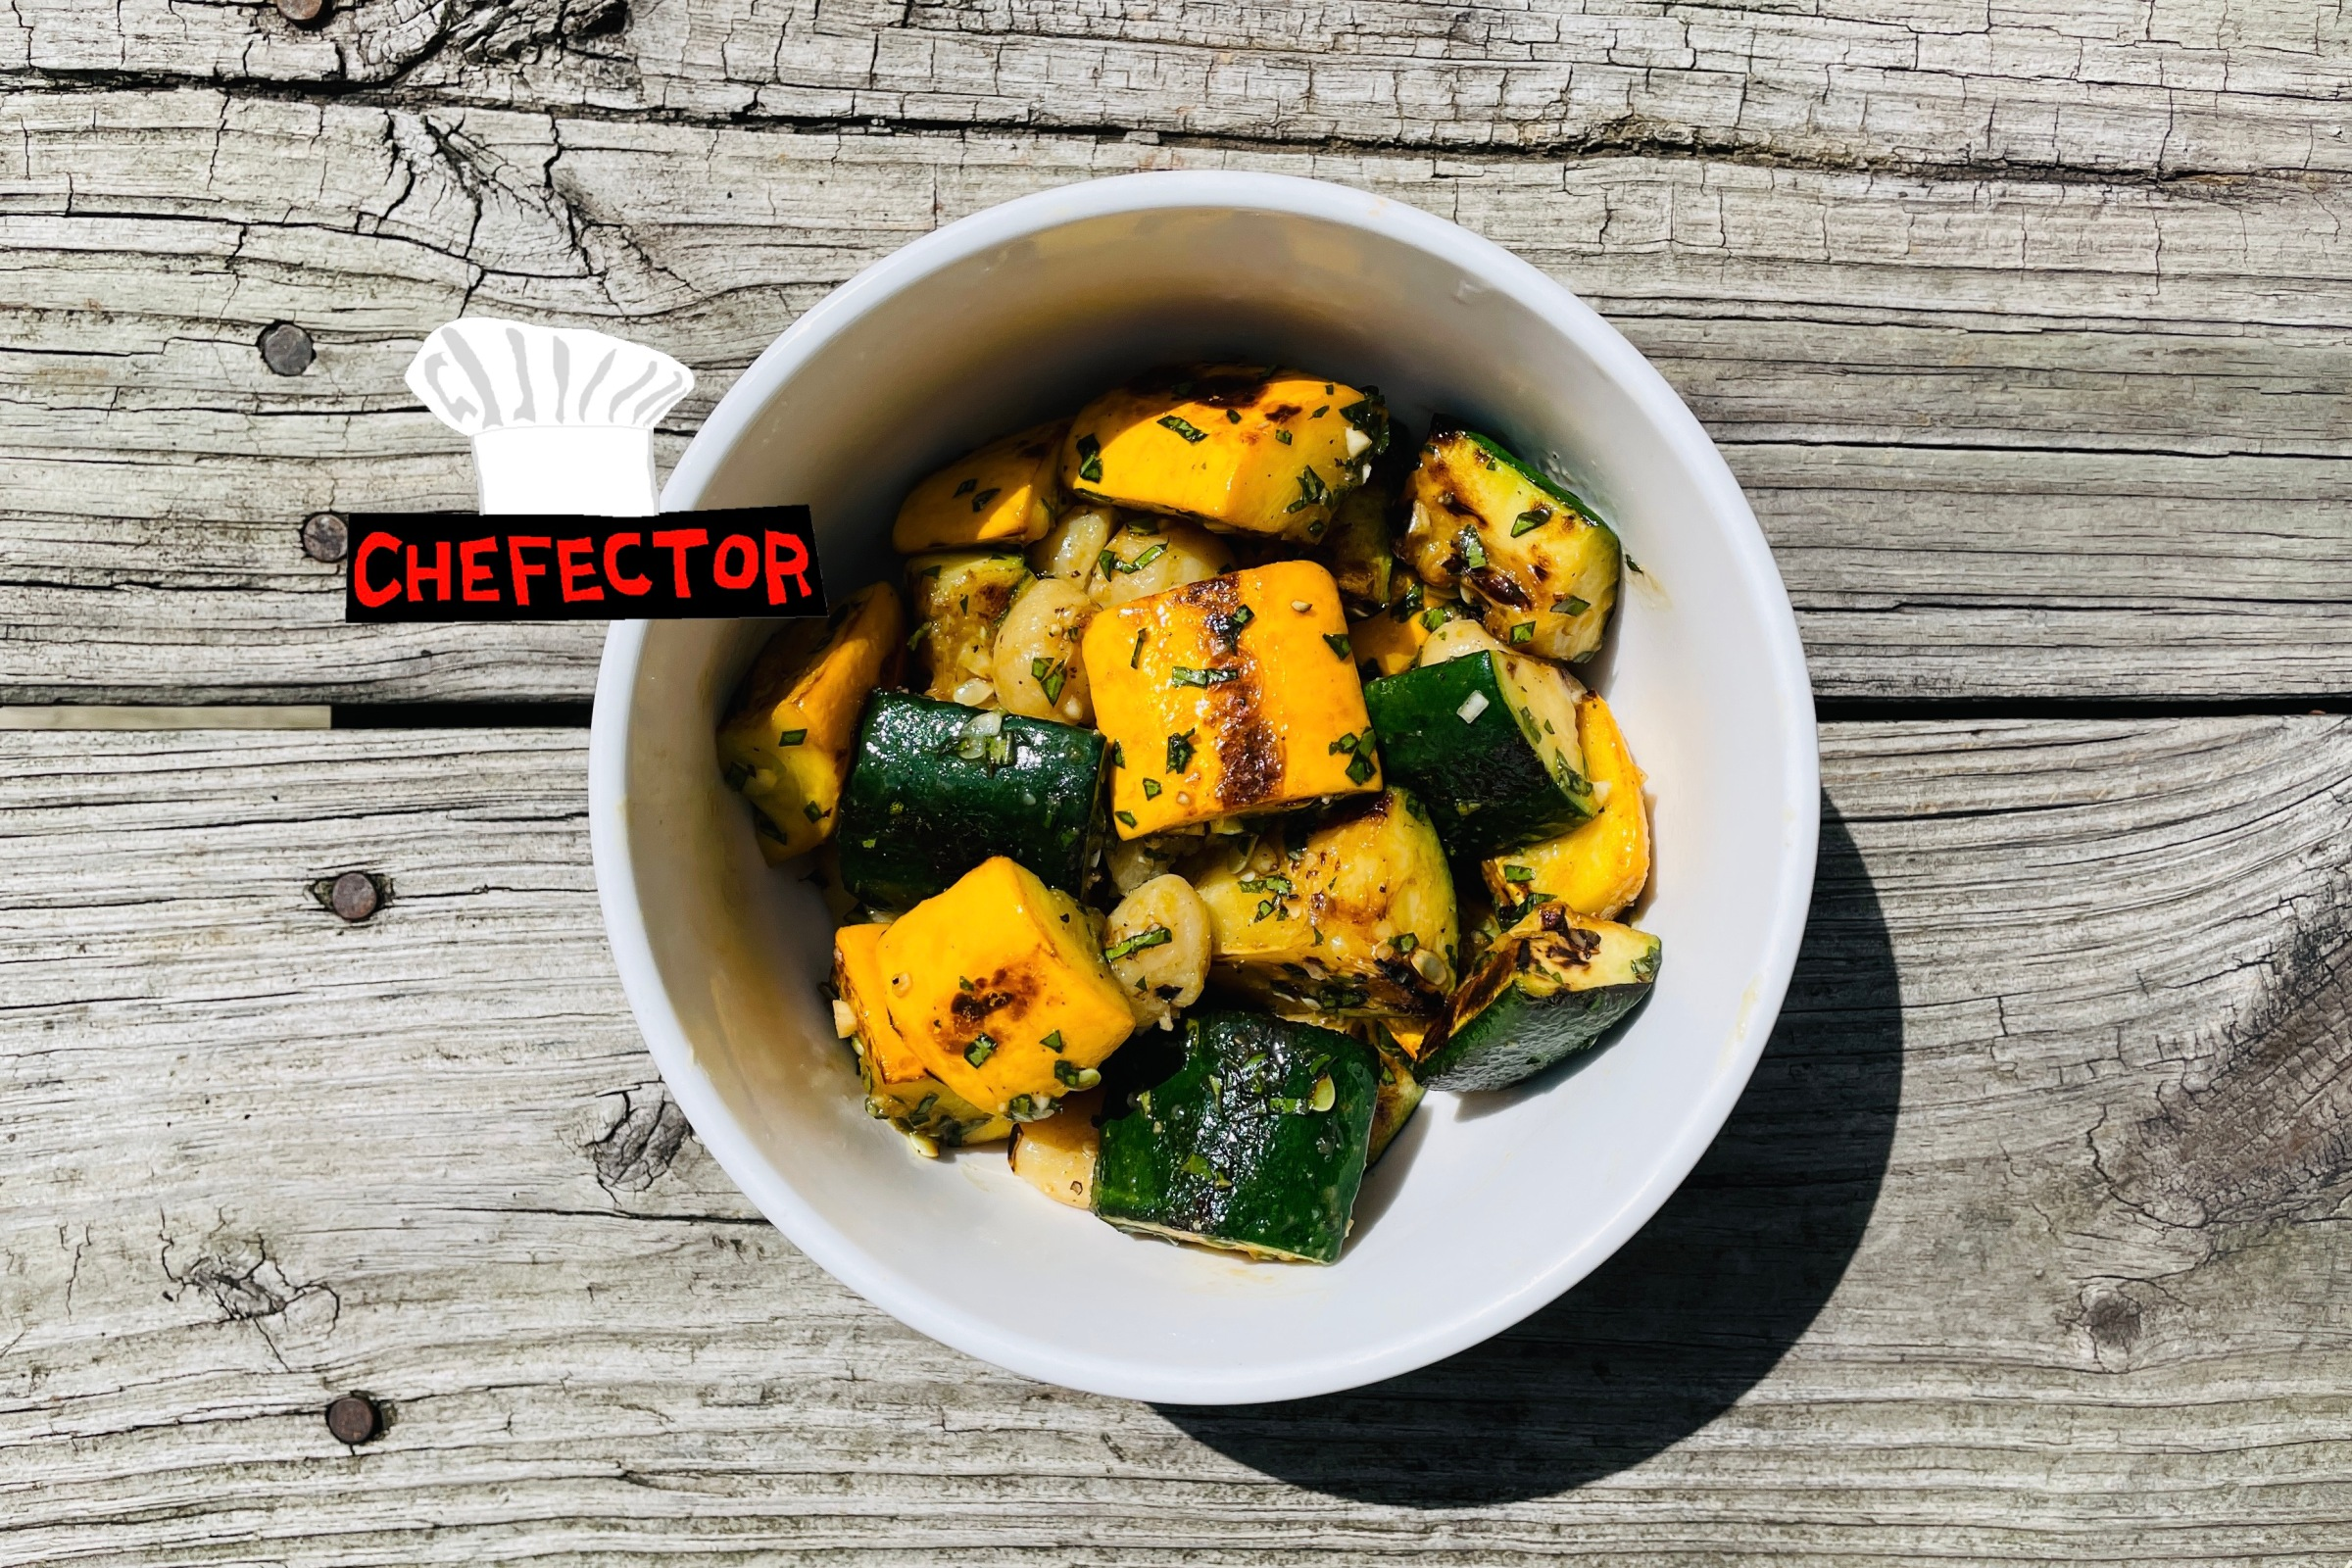 A bowl of squash with gnocchi and basil